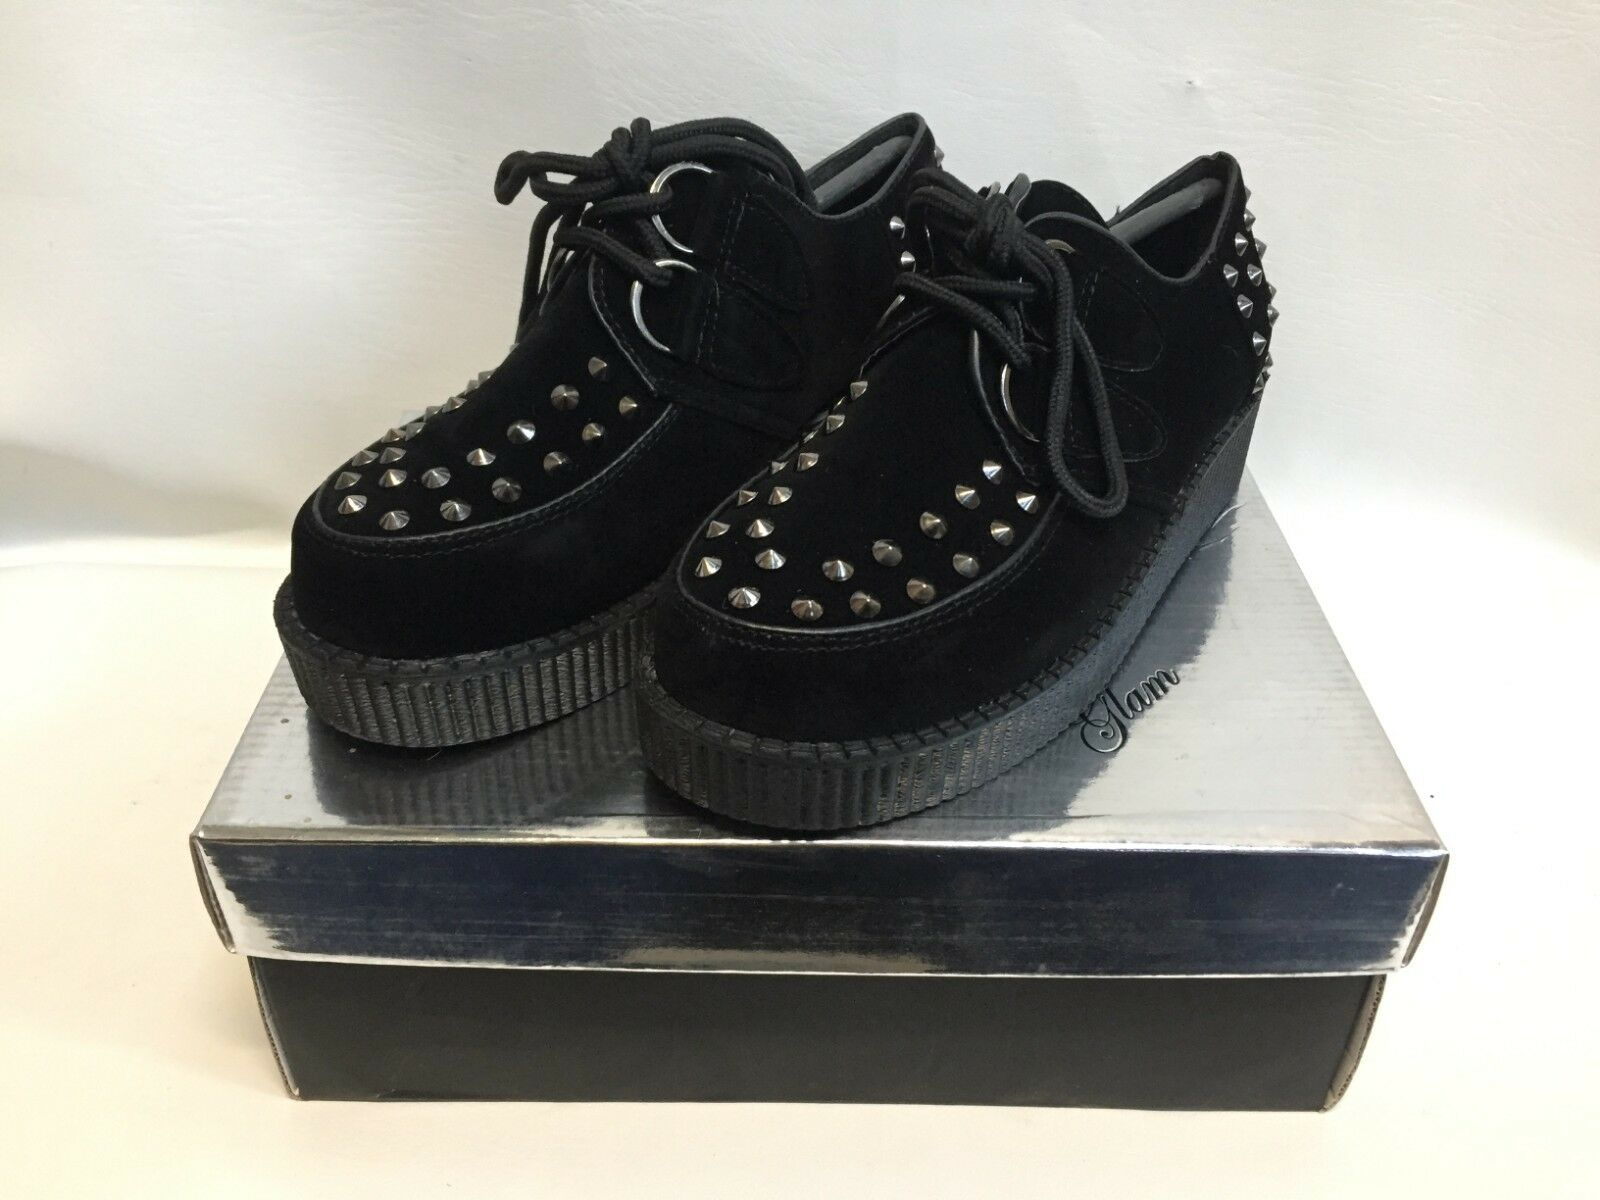 New Boxed Essex Glam Black Faux Suede Studded Creepers Size UK 4 FREE P&P